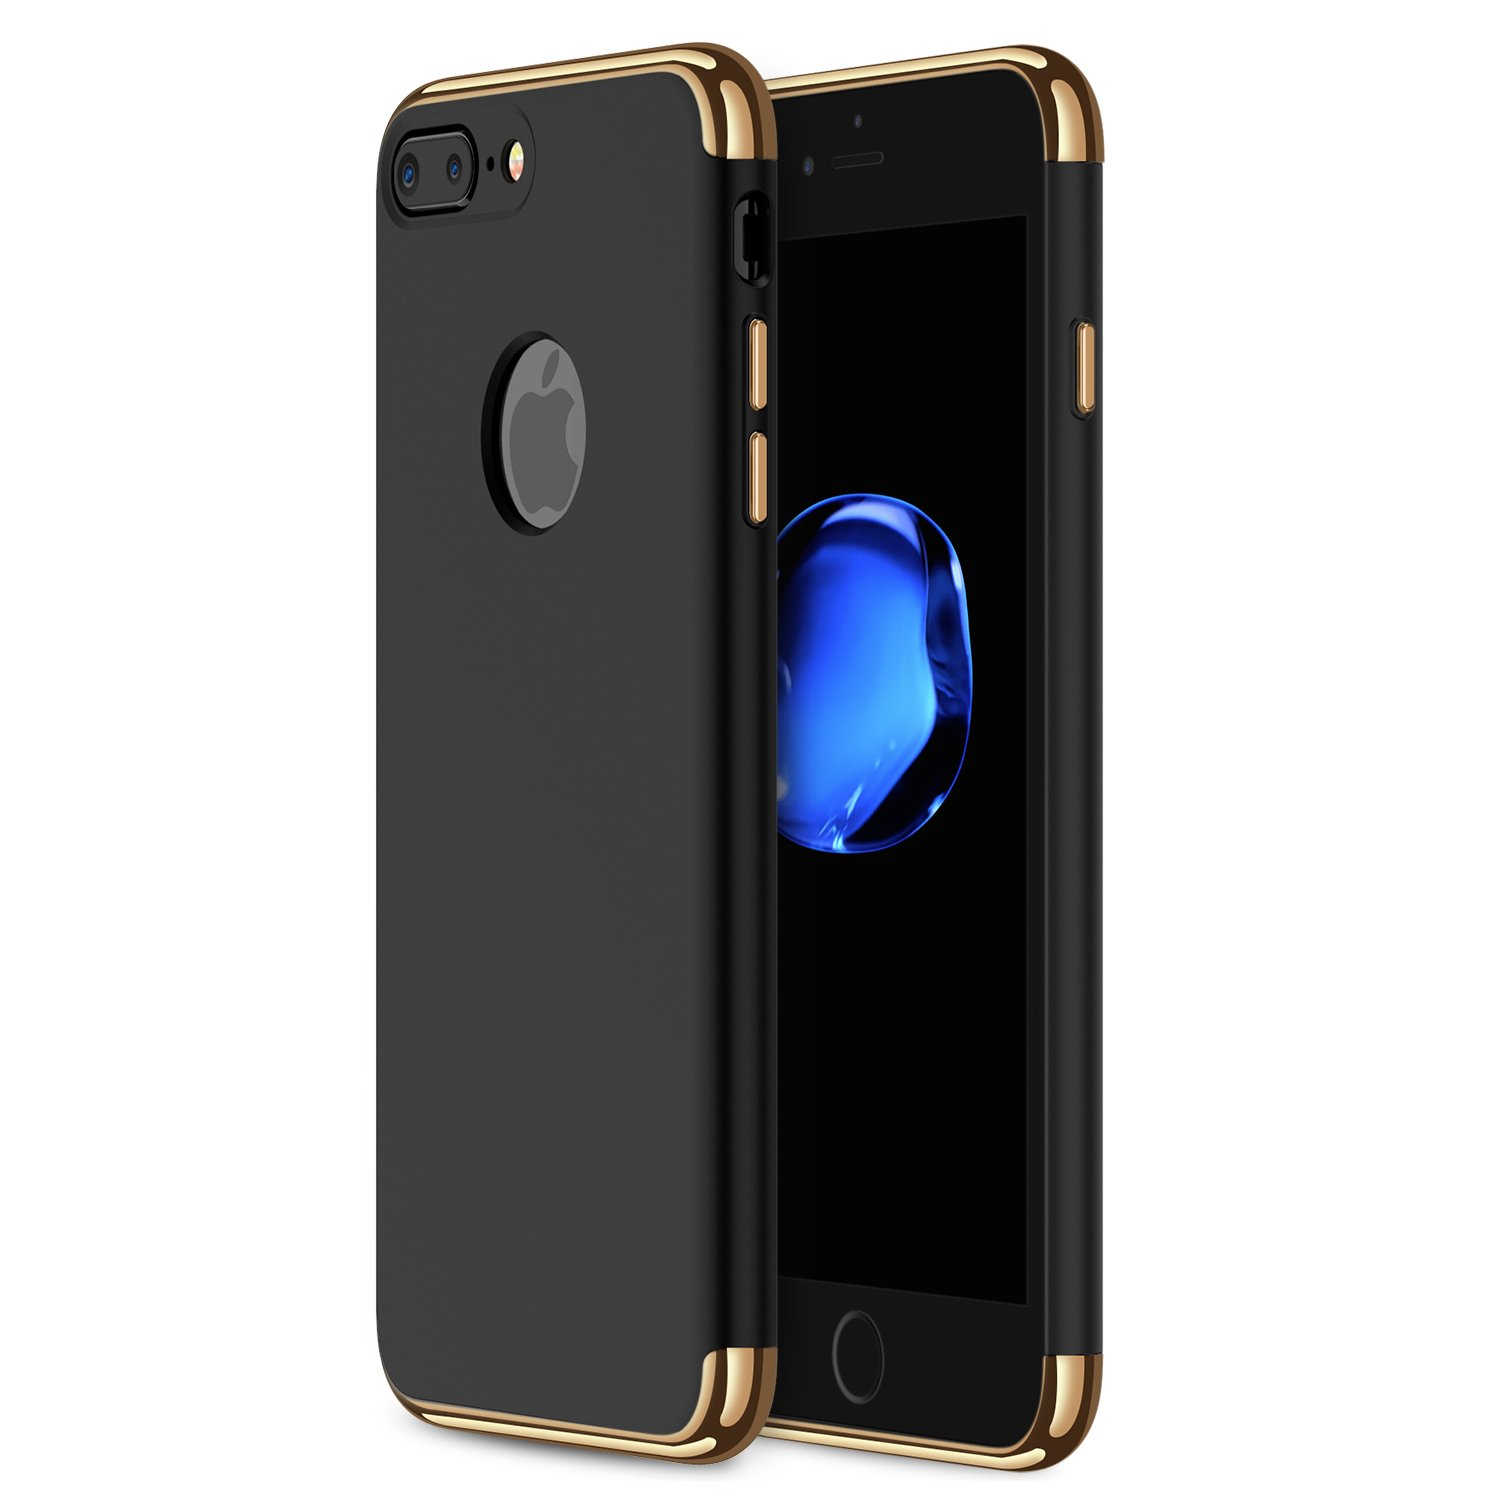 iphone 7 plus case ranvoo 3 in 1 anti scratch shockproof electroplate frame ebay. Black Bedroom Furniture Sets. Home Design Ideas